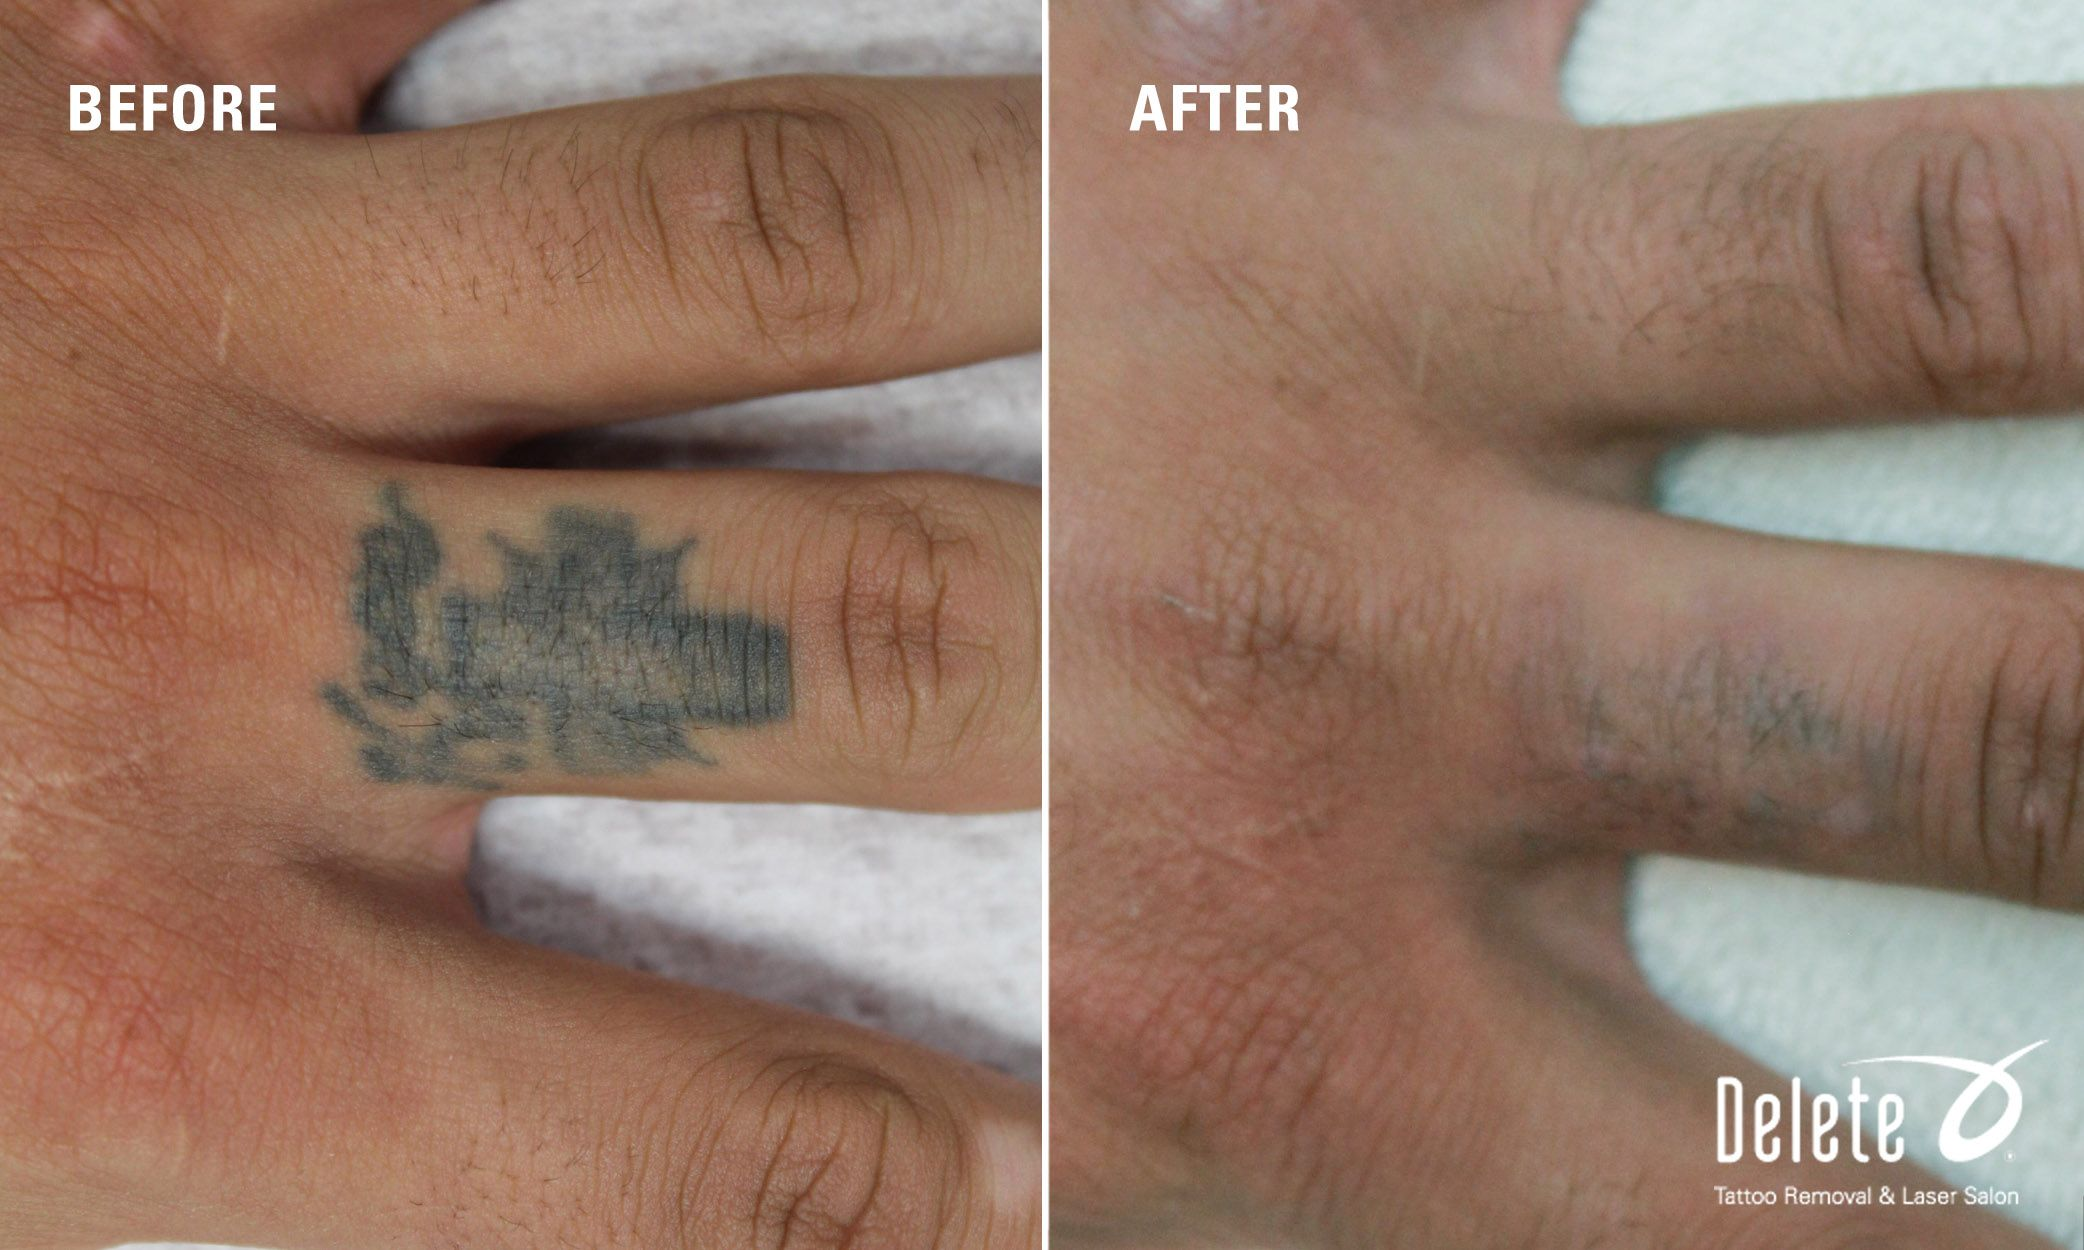 Here Is This Week S Before After Picoway Laser Tattoo Removal From The Docs At Delete Fingers Are The 1 Laser Tattoo Removal Laser Tattoo Tattoo Removal